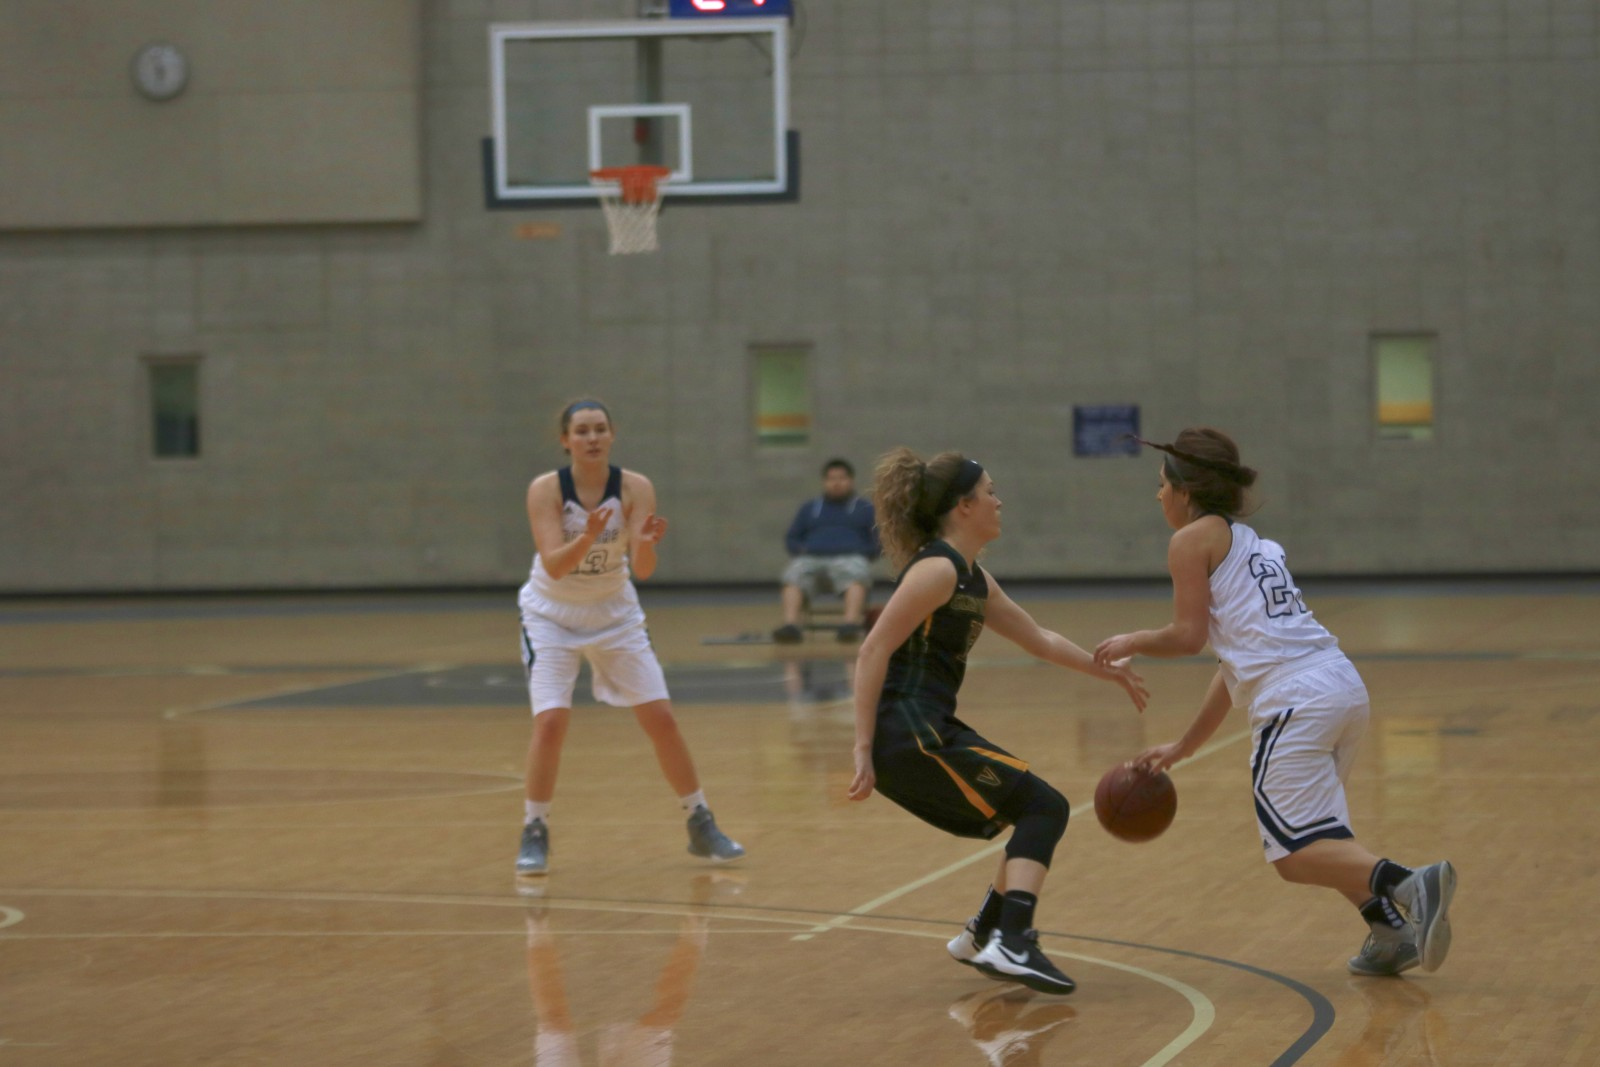 Freshman Guard, #21, Maddie Albert (right) with the ball and driving towards the basket as Freshman Forward, #13, Josie Manion is on the perimeter for the extra pass.